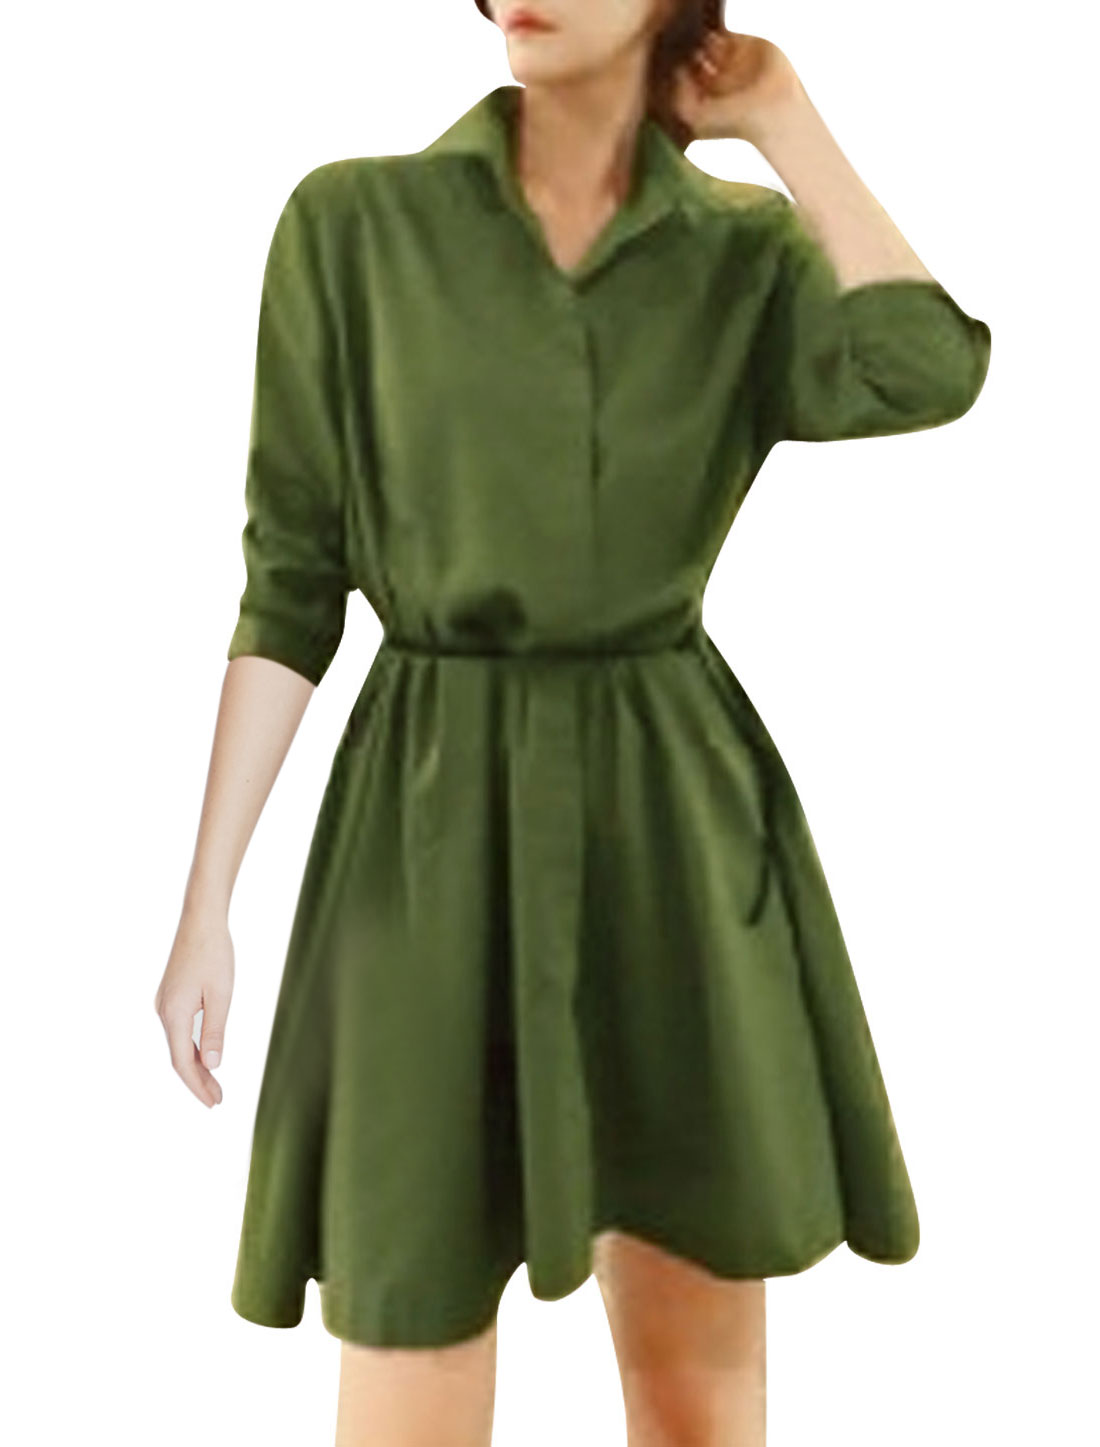 Lady Point Collor 3/4 Sleeve Button Closure Trench Coat w Belt Army Green S